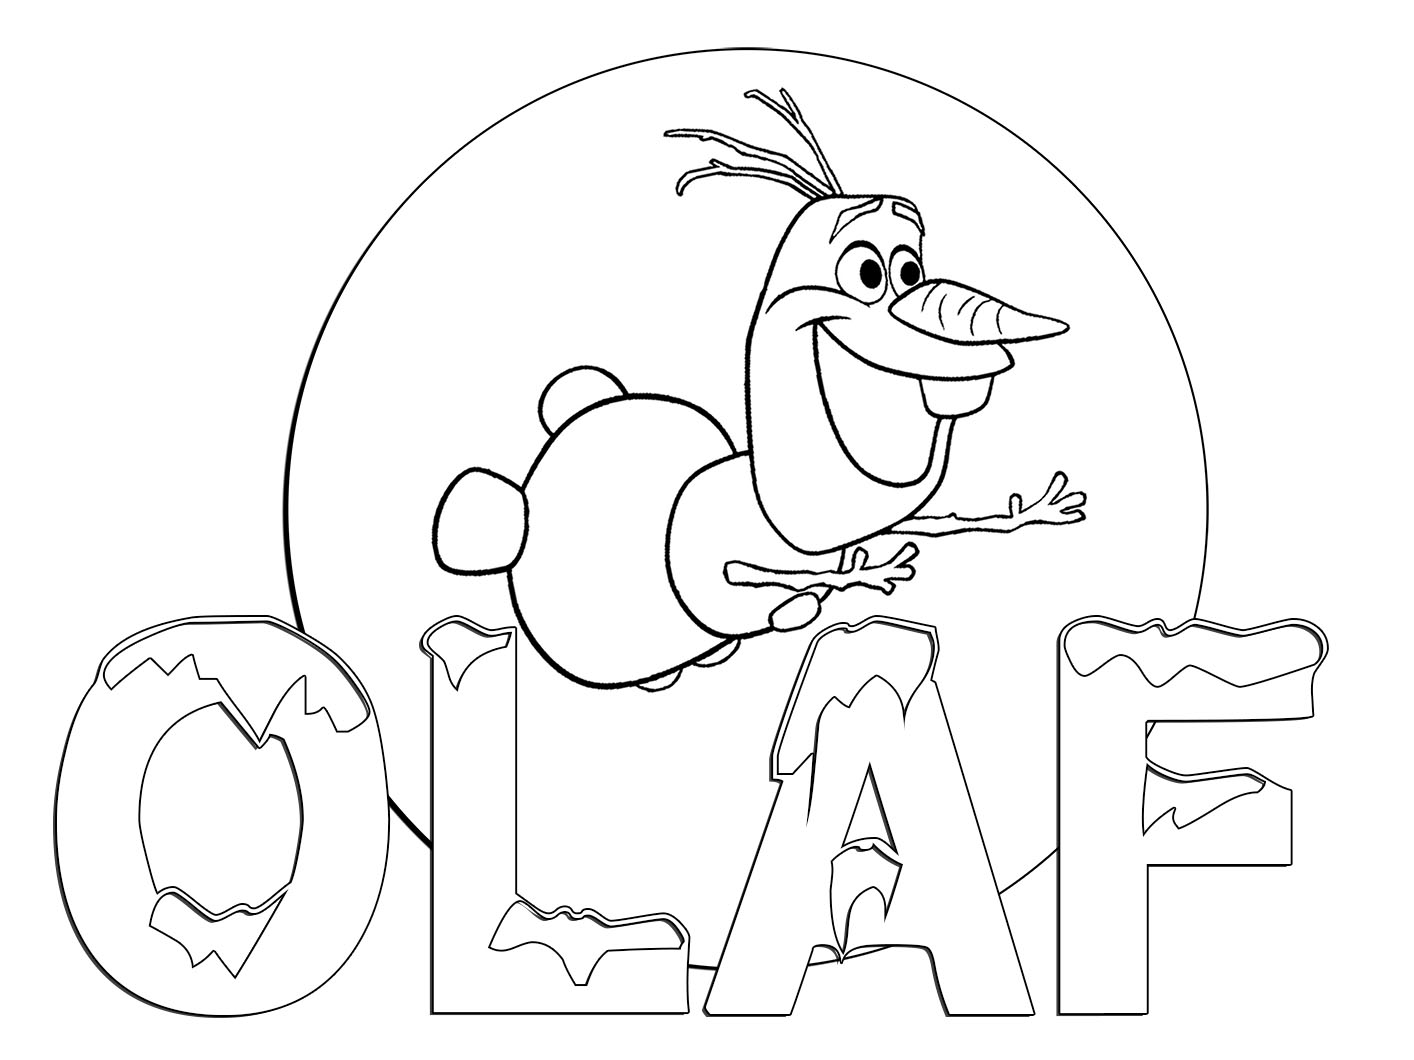 coloring pages for igore movie - photo#3